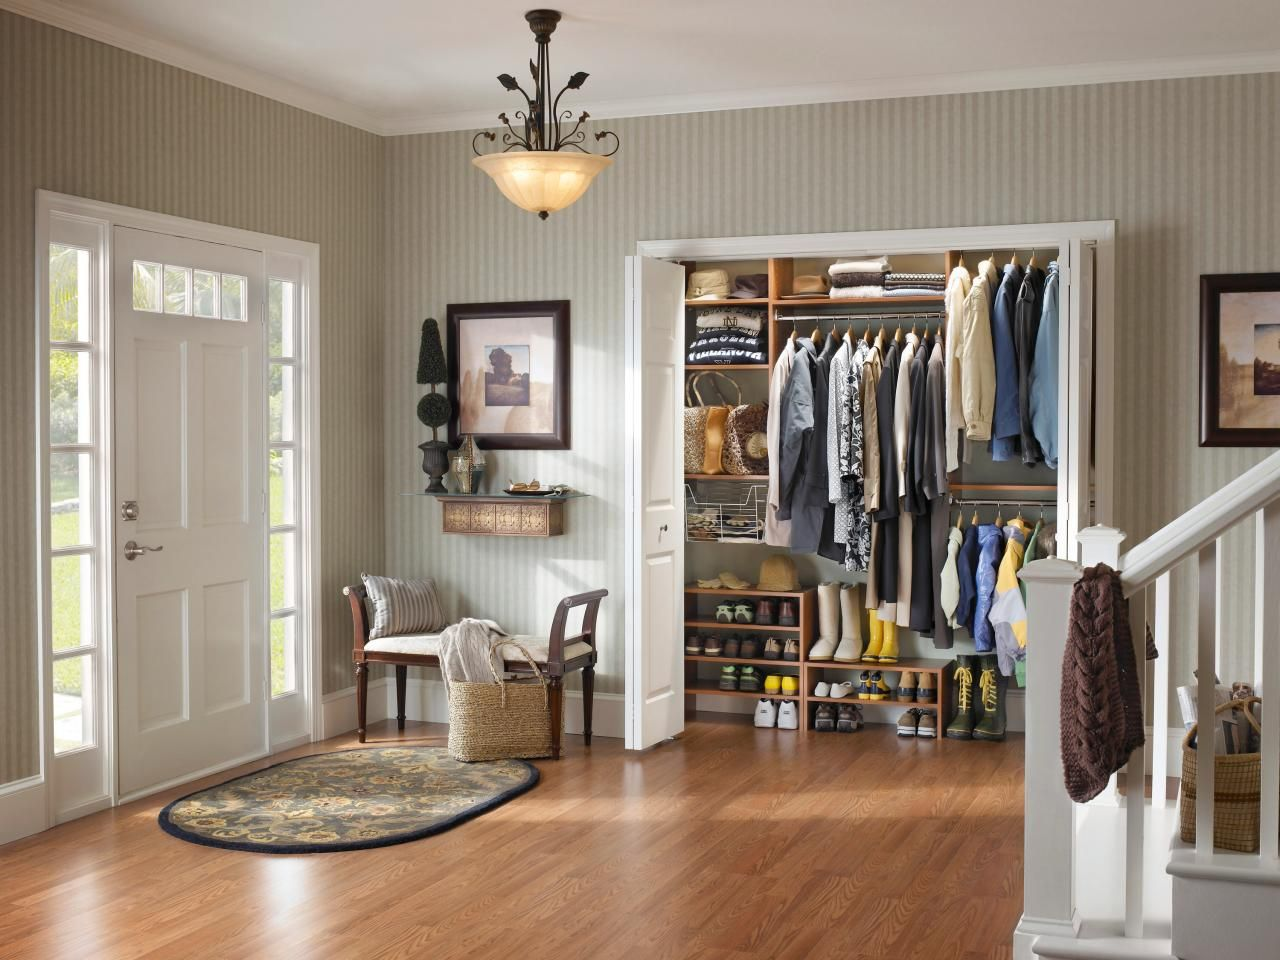 Living Room Closet Design Stunning 10 Stylish Reachin Closets  Hgtv Foyers And Clutter 2018